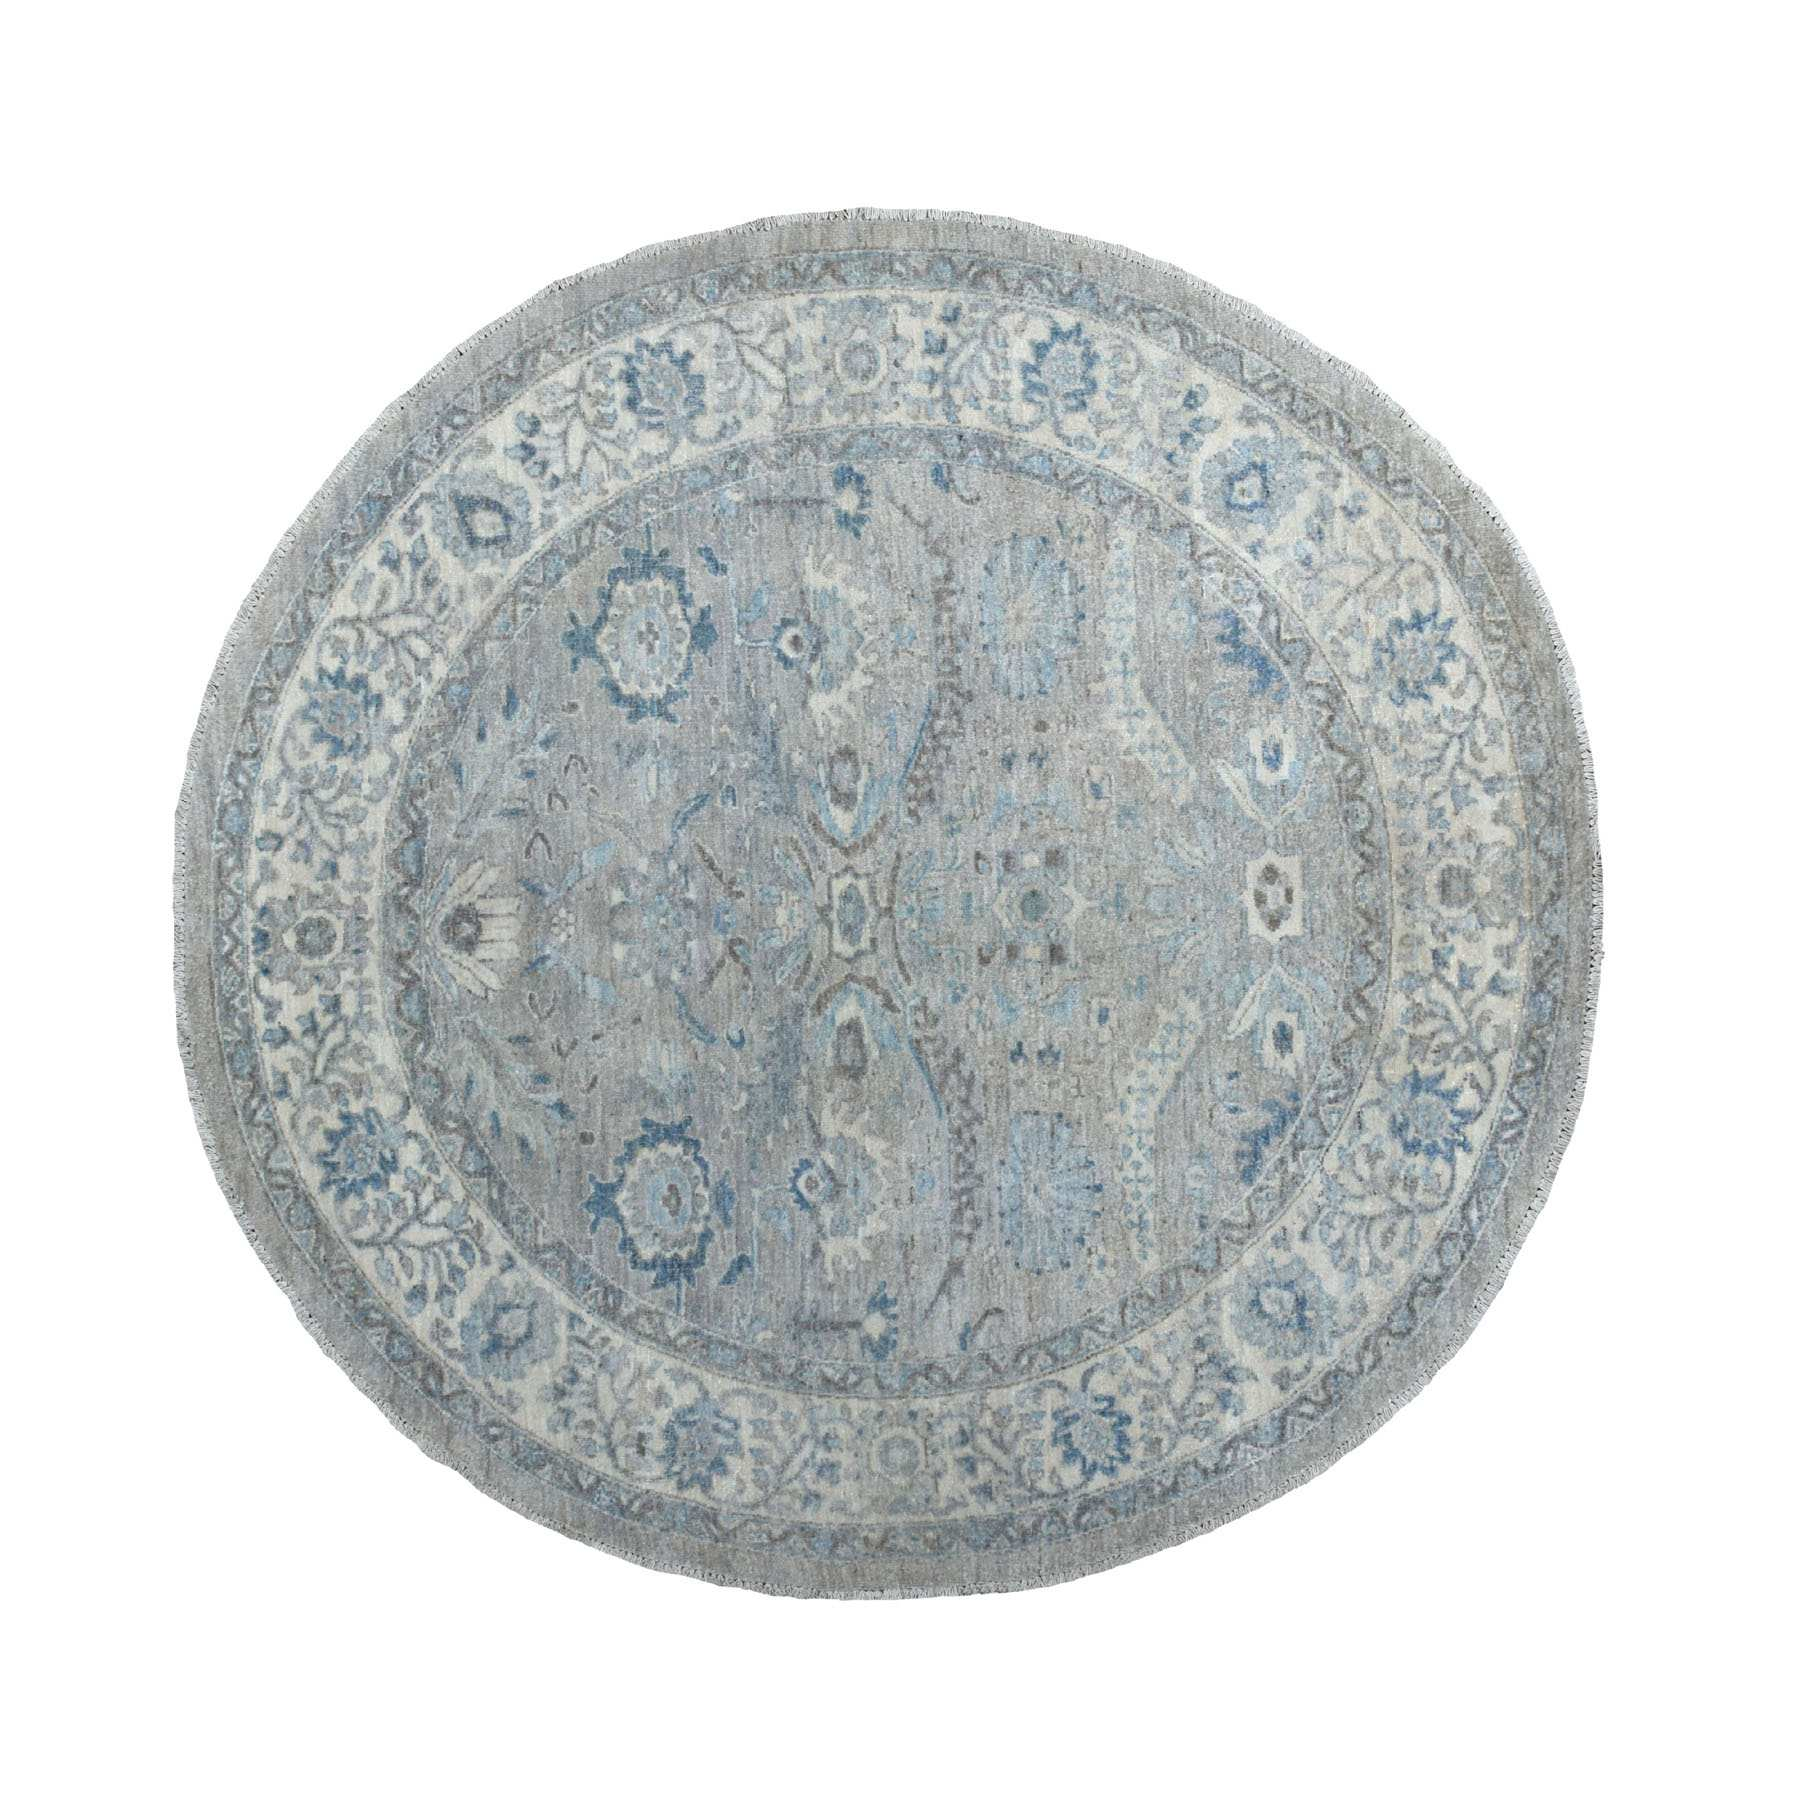 6'X6' Gray Afghan Peshawar Ziegler Mahal Design Natural Wool Hand Knotted Round Oriental Rug moaeeabd